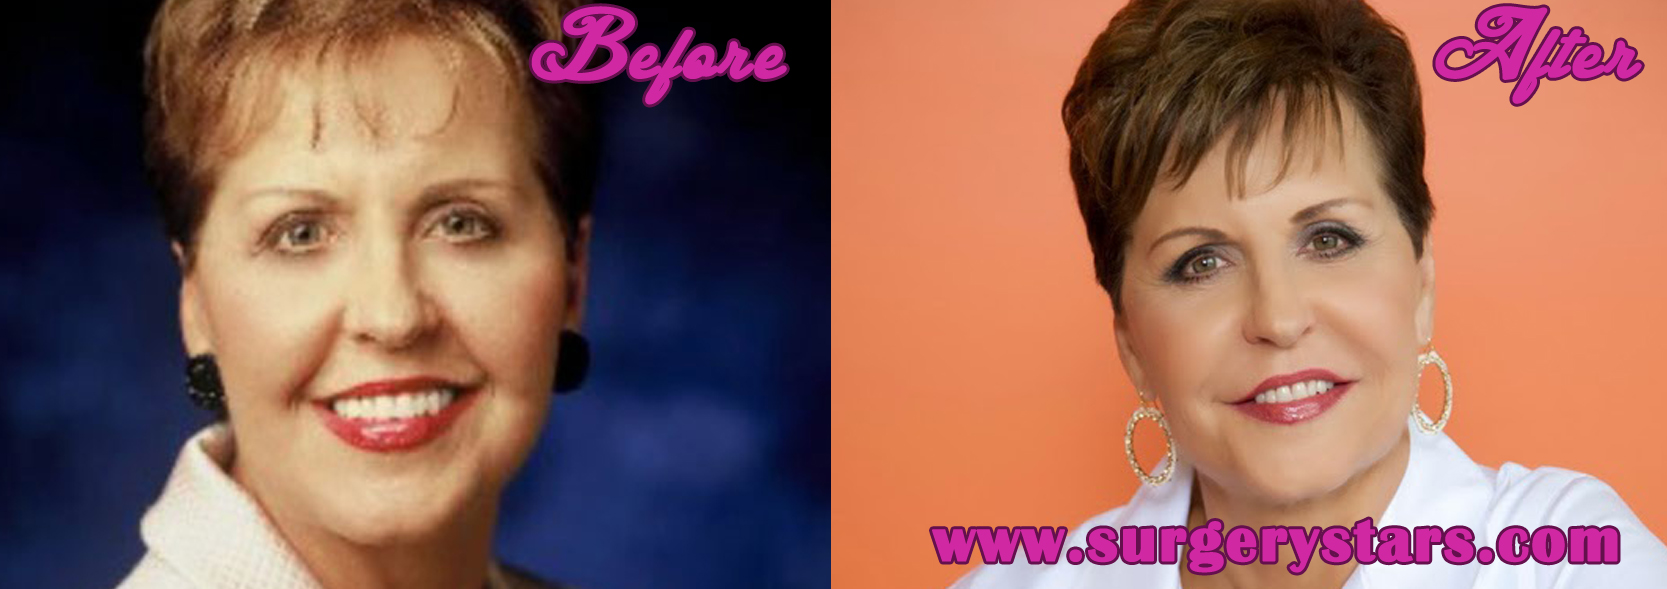 Joyce Meyer Plastic Surgery – Before and After Pictures